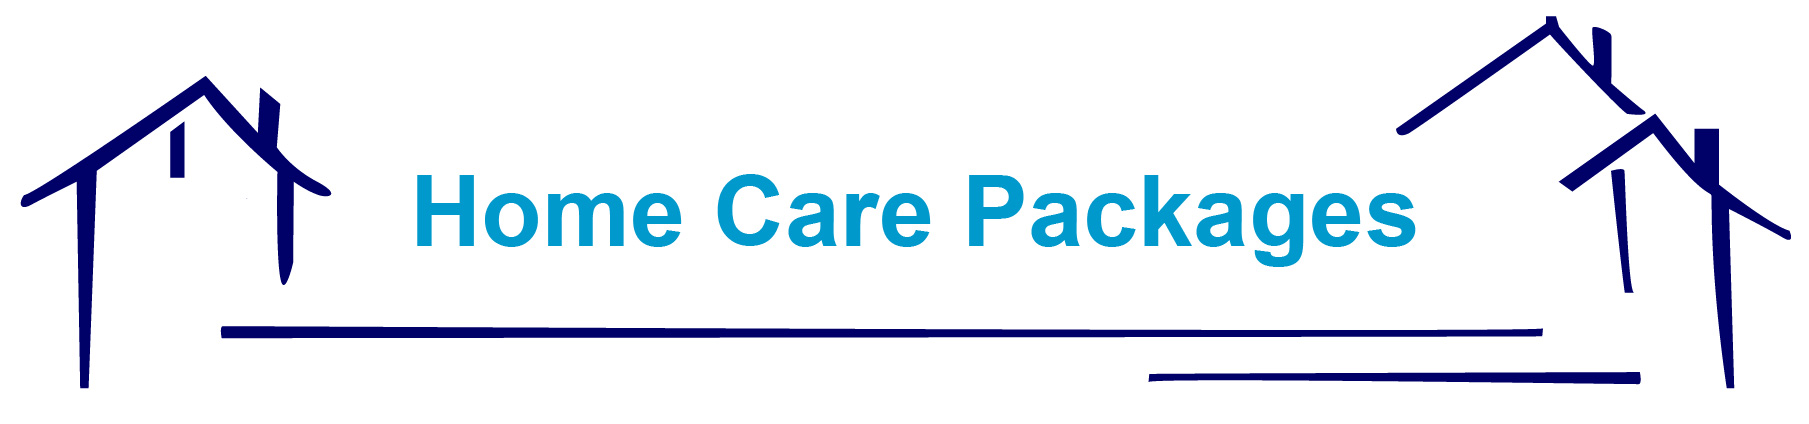 home care packages 80